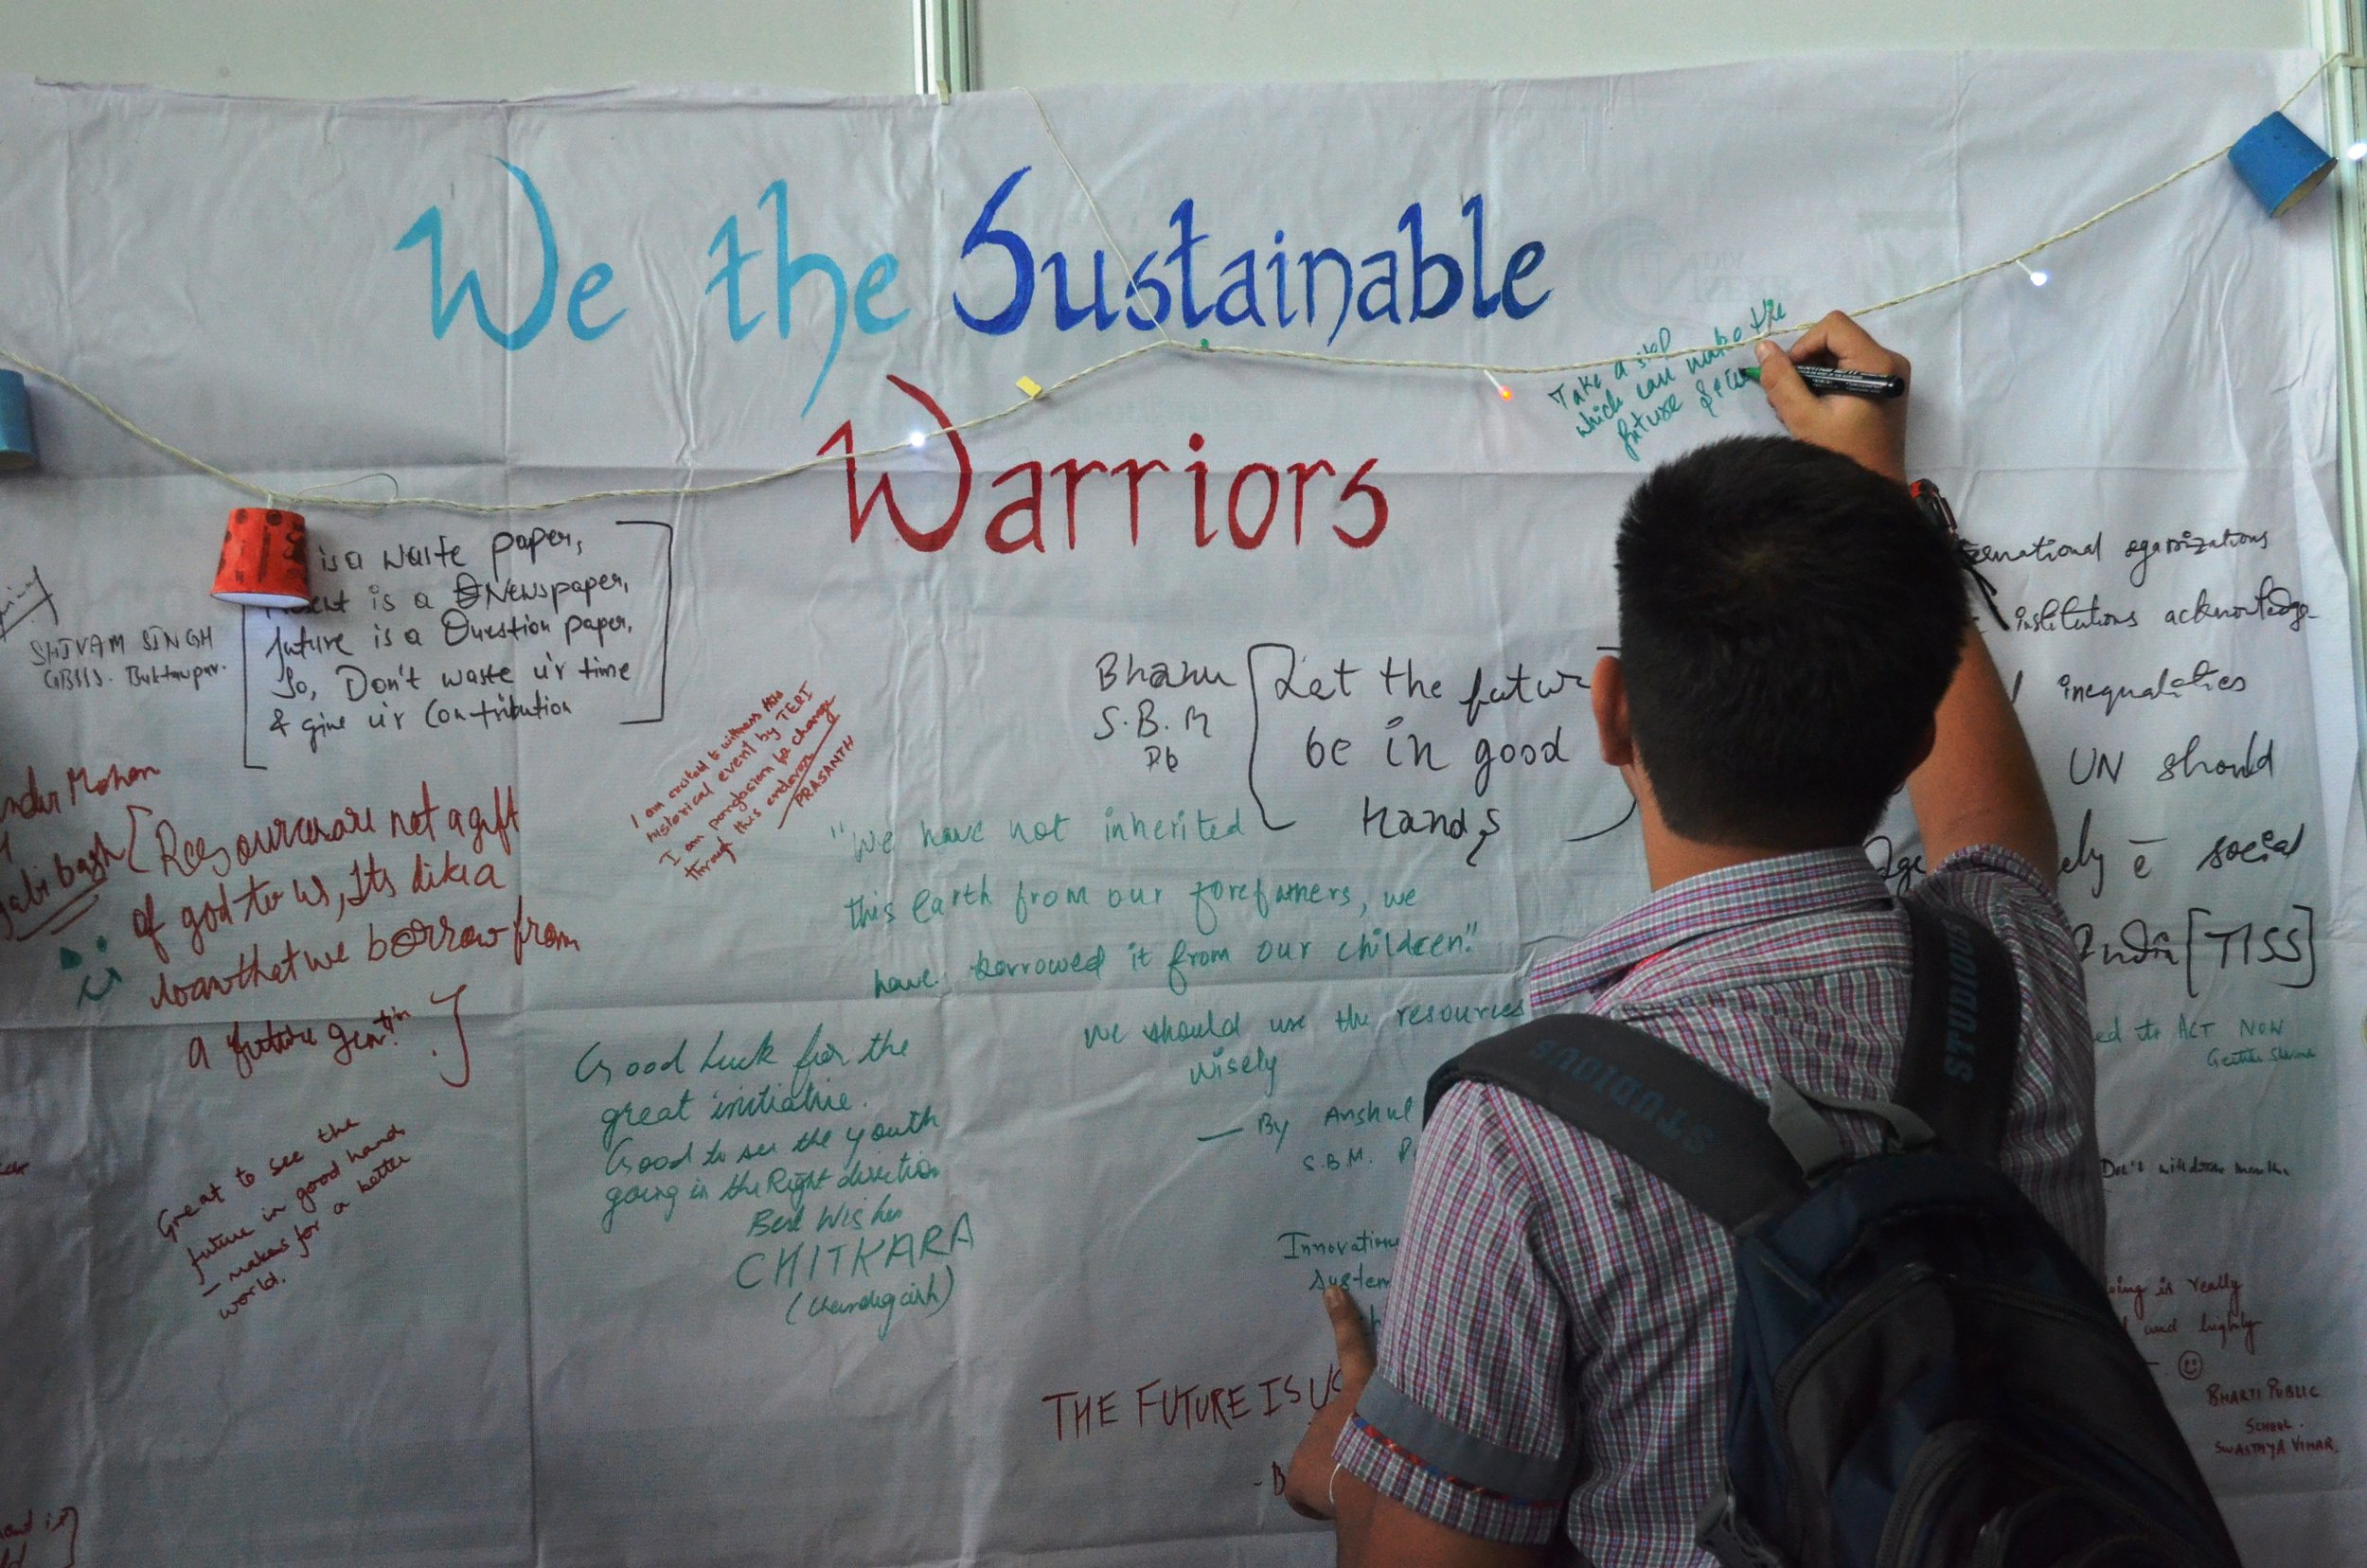 Let's Pledge- We the Sustainable Warriors